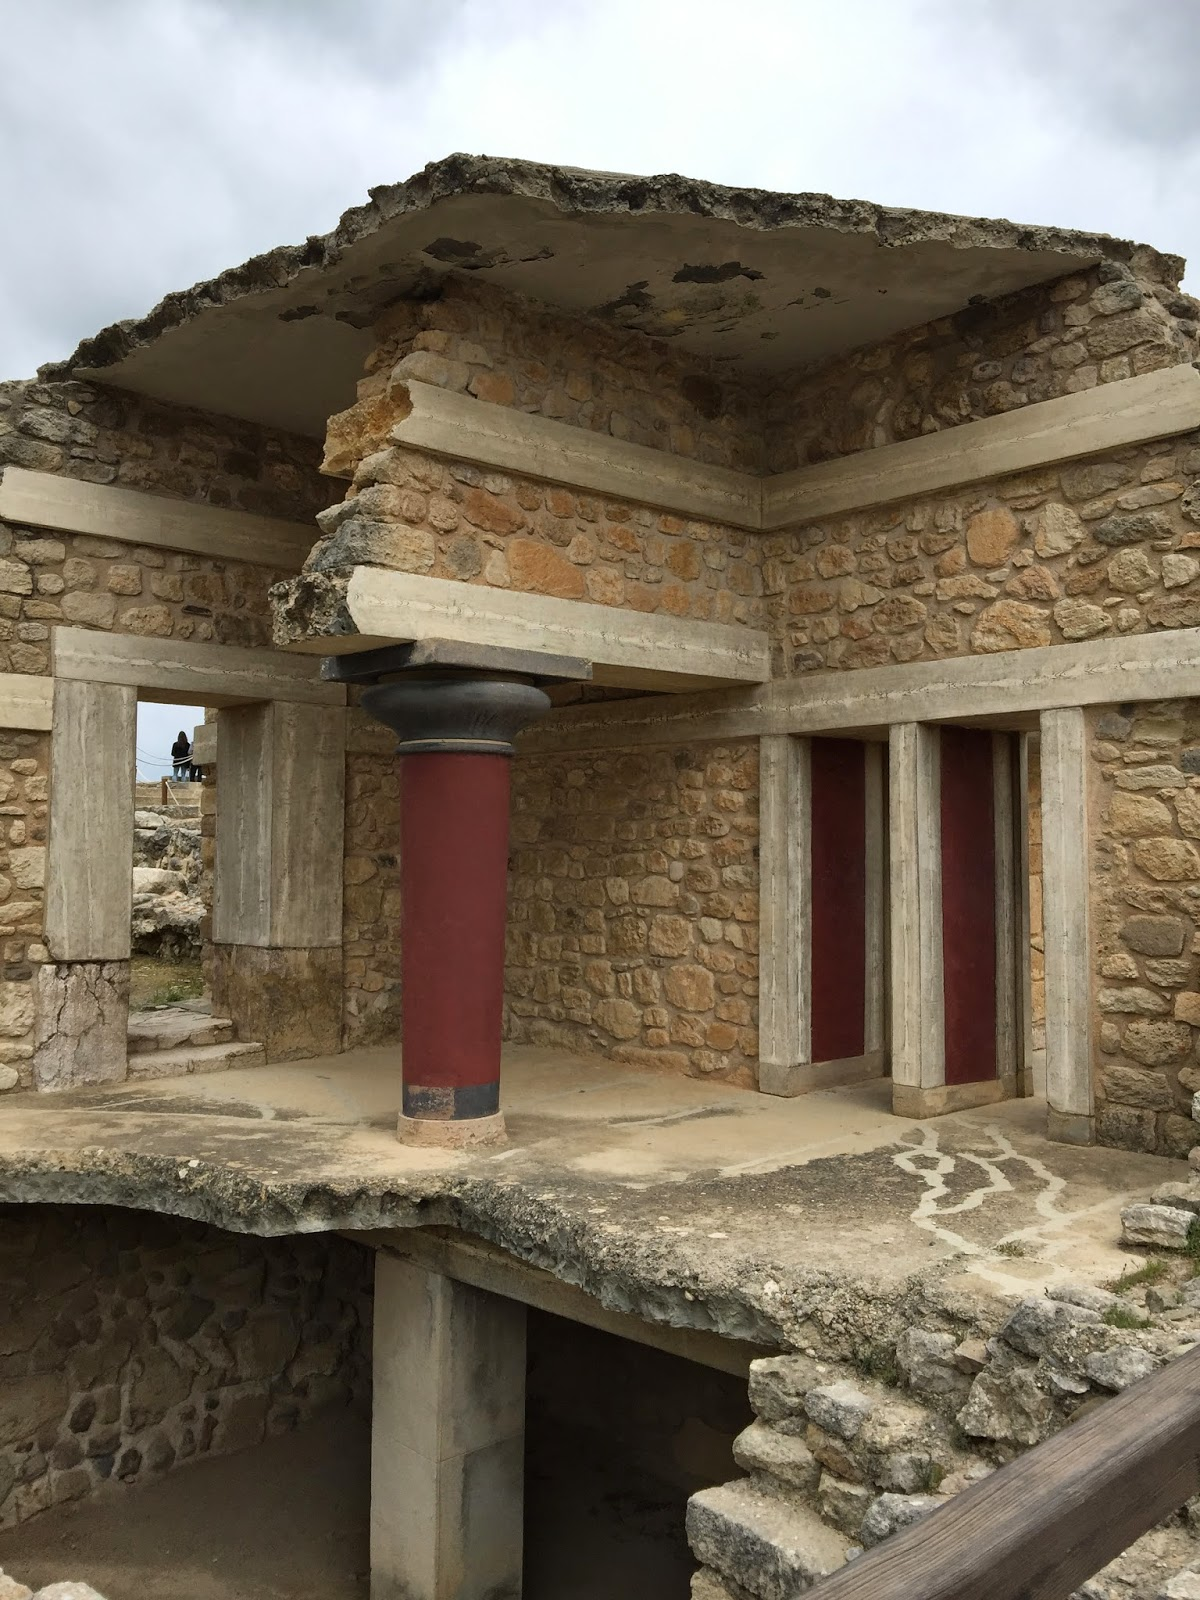 Knossos Palace ruins on Greek island of Crete